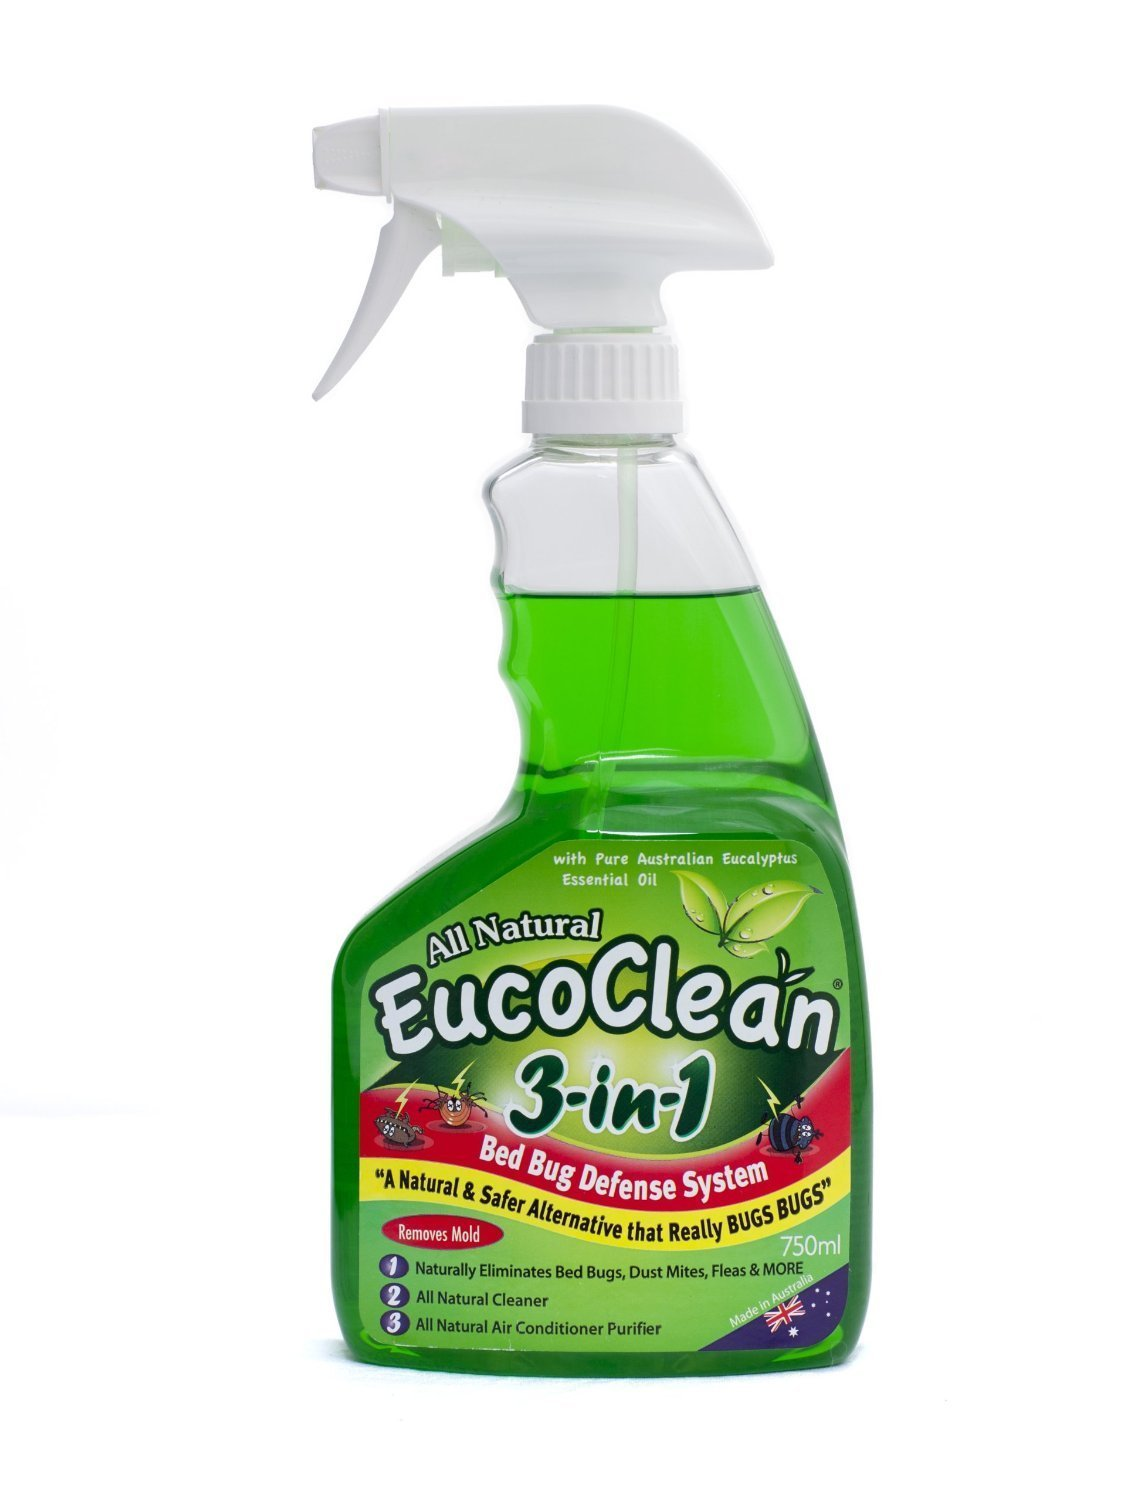 Eucoclean For Bed Bugs